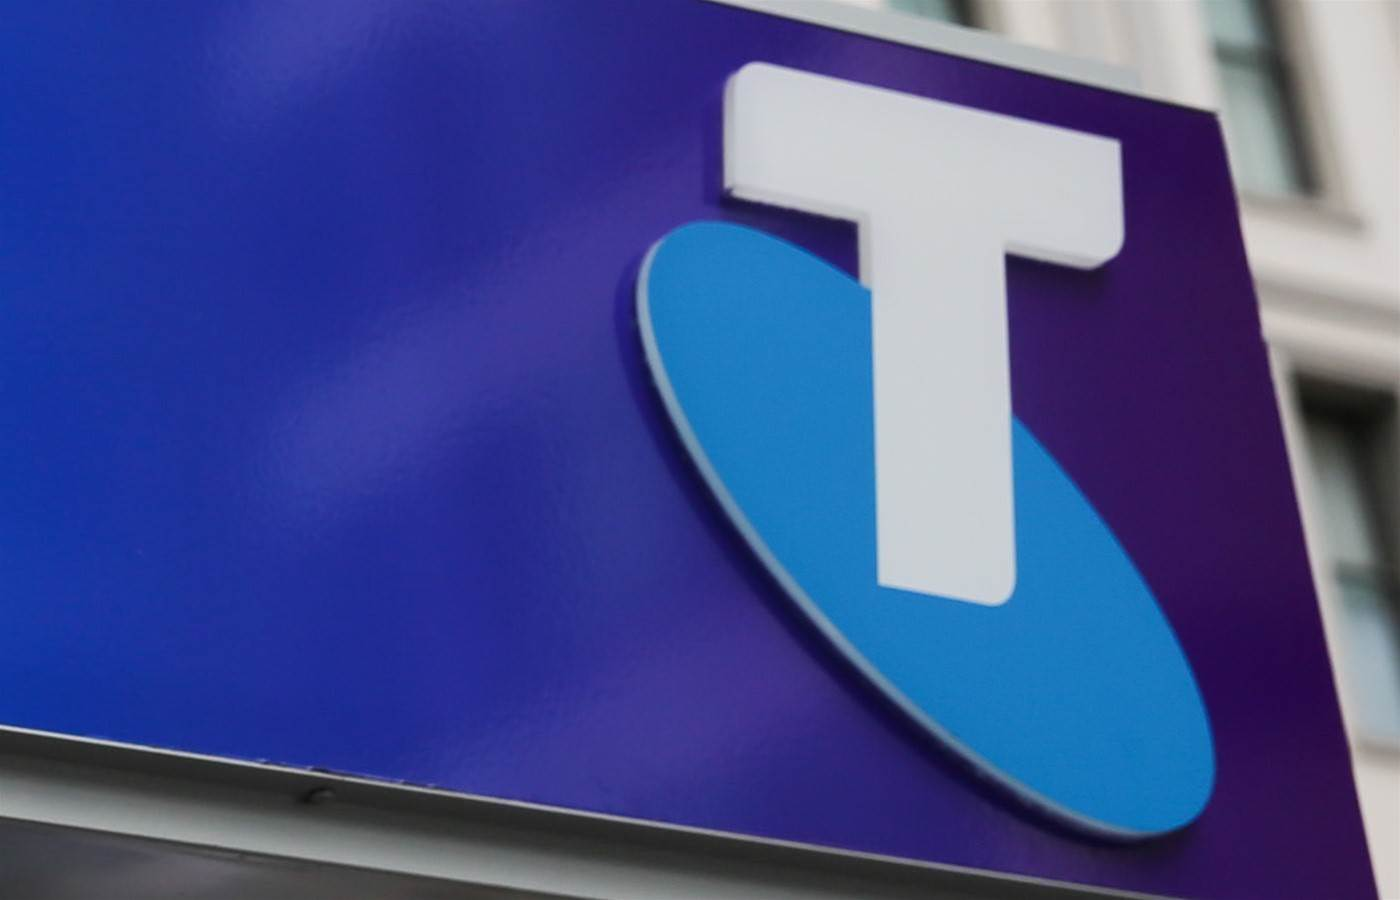 Telstra In Court Over Unfair Sales To Indigenous Customers Telco Crn Australia